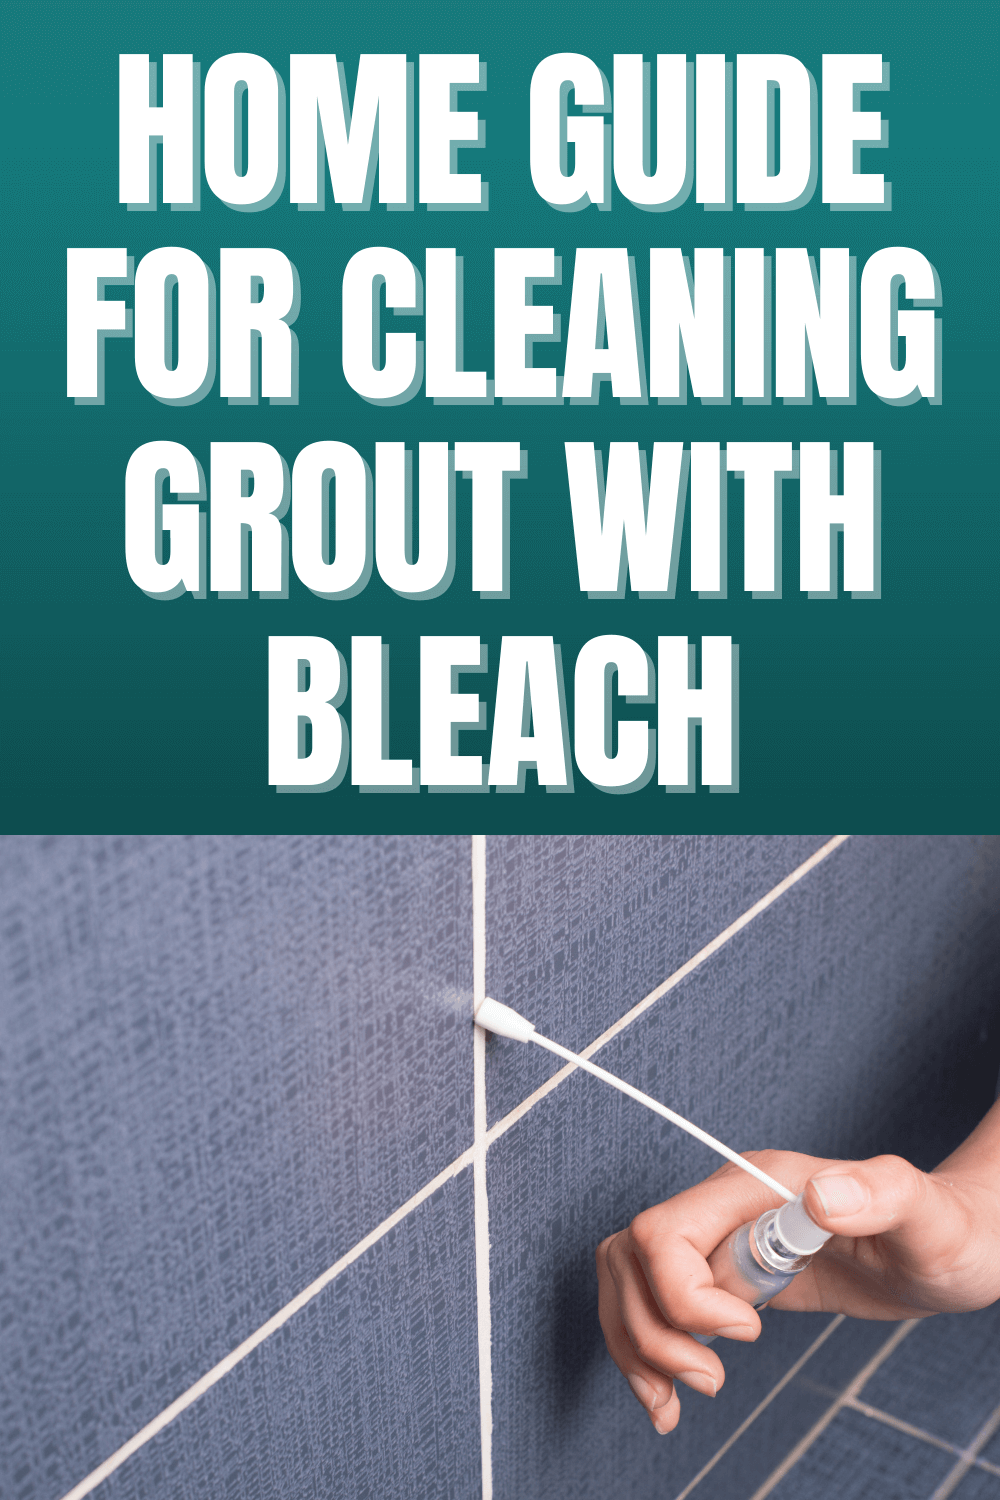 HOME GUIDE FOR CLEANING GROUT WITH BLEACH